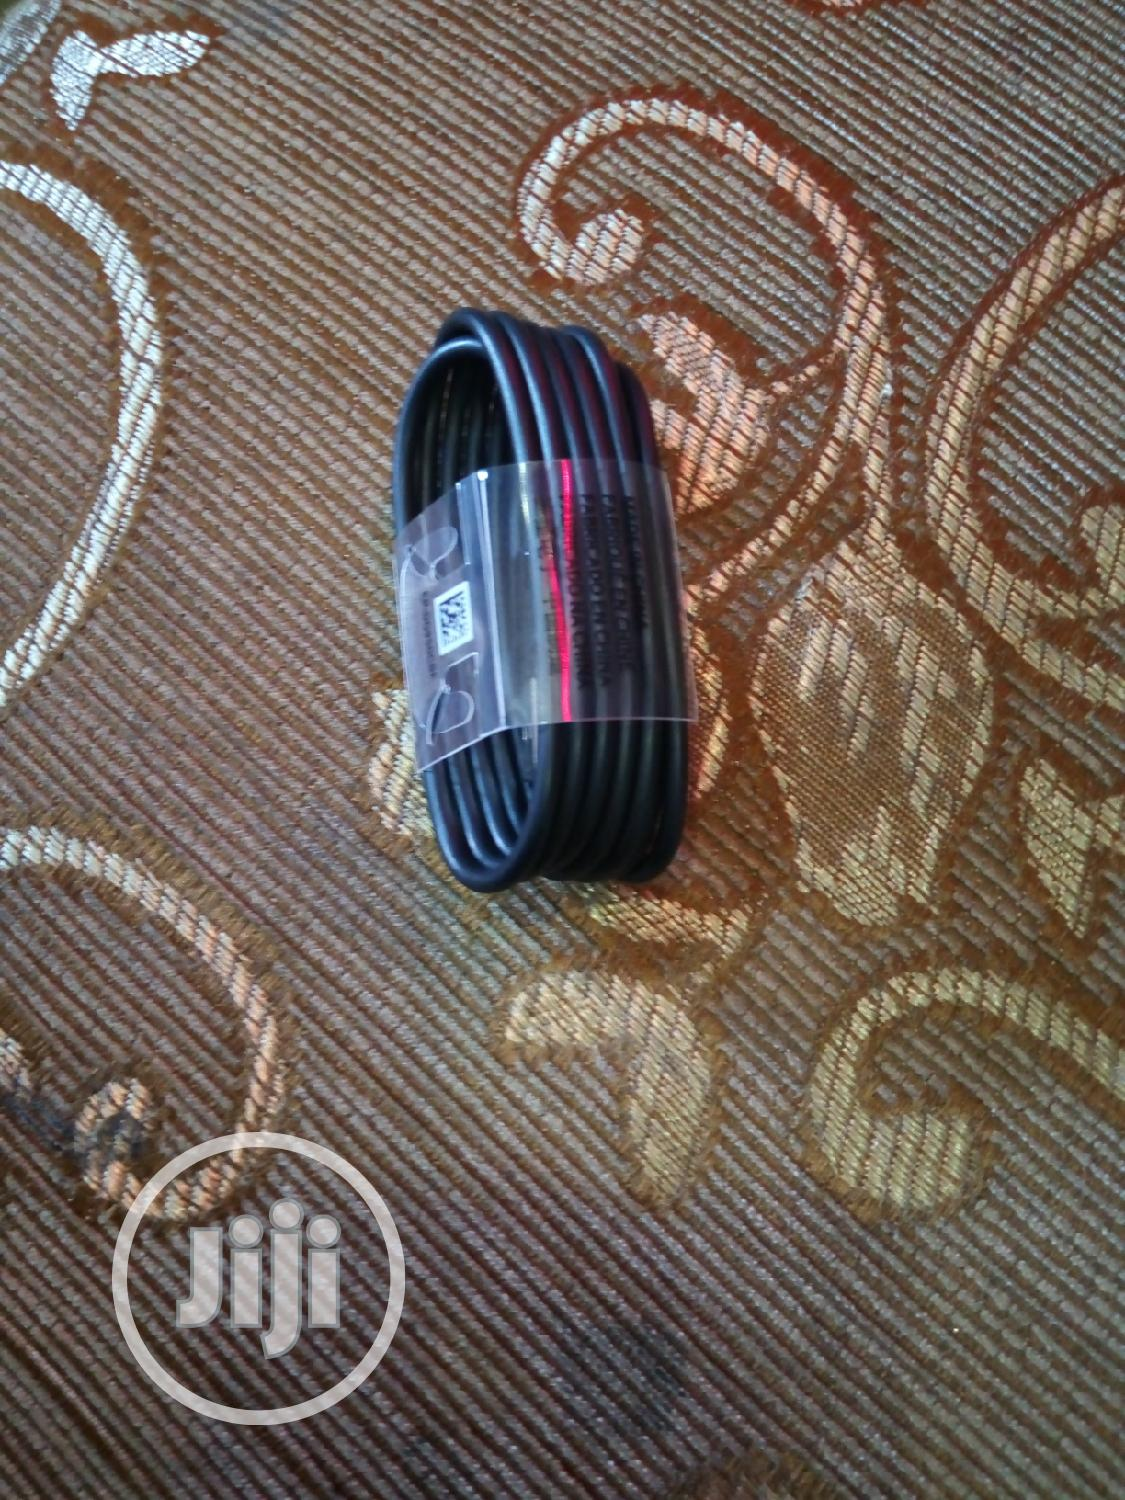 Original Samsung/Any Type C Cable   Accessories for Mobile Phones & Tablets for sale in Wuse, Abuja (FCT) State, Nigeria